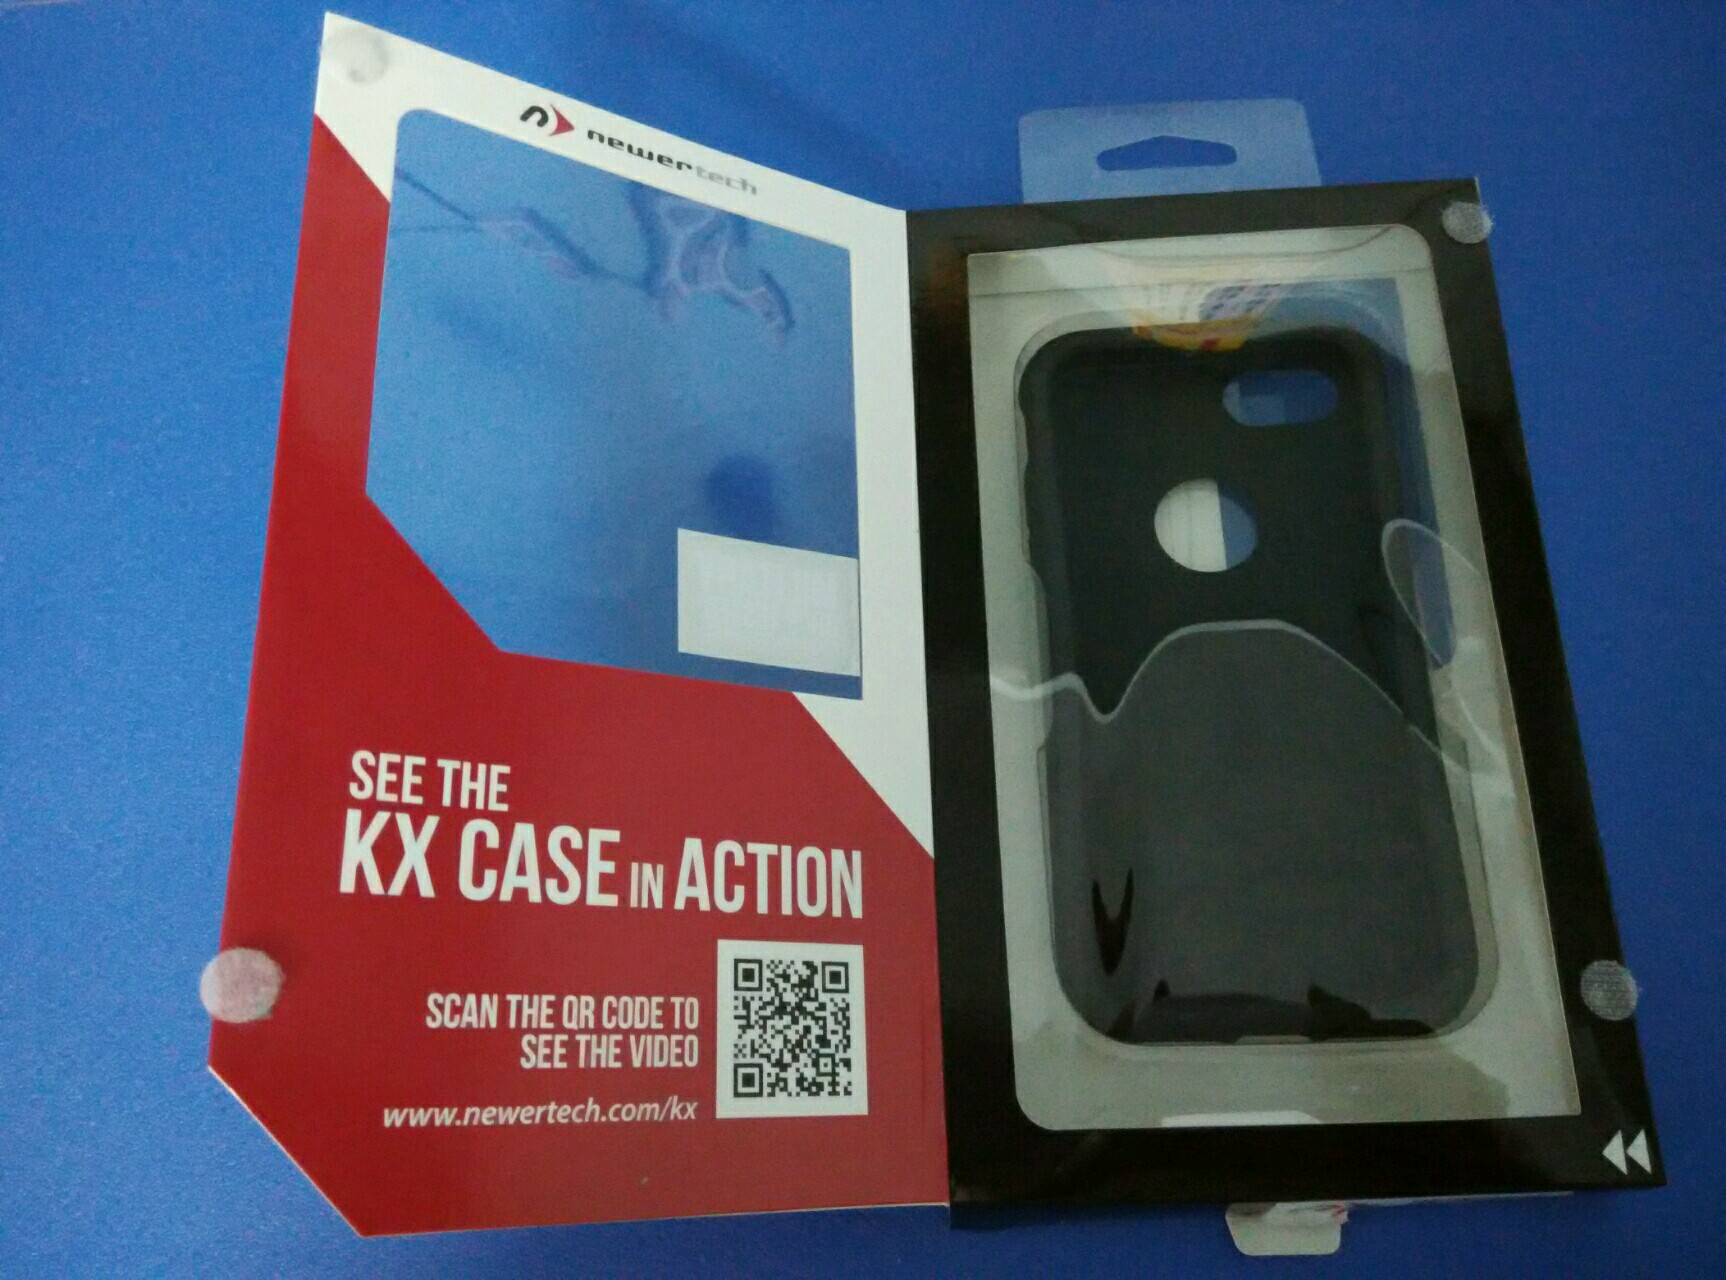 Newertech NuGuard KX Review: Tailor made with durability in mind